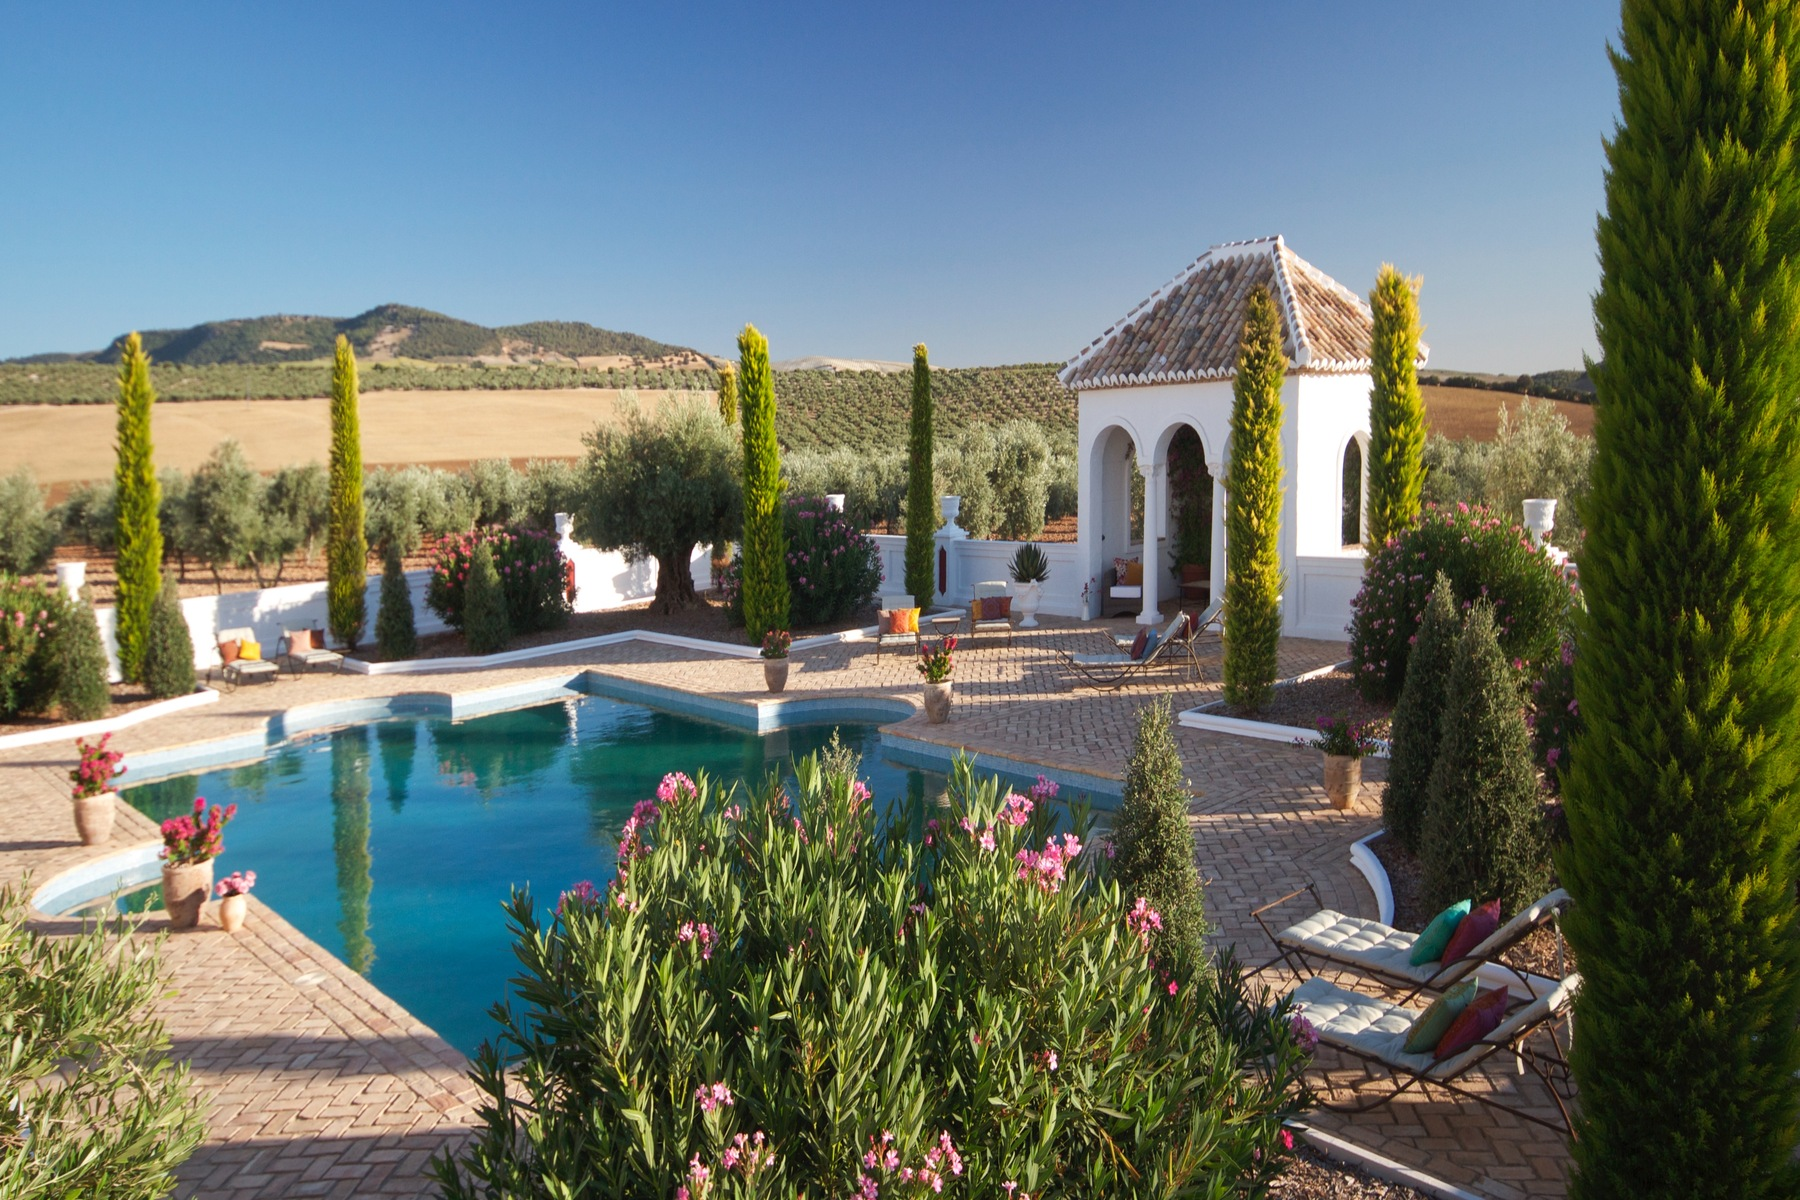 Single Family Homes for Sale at Extraordinary country house in Montellano, Seville Montellano Sevilla, Andalucia 41770 Spain